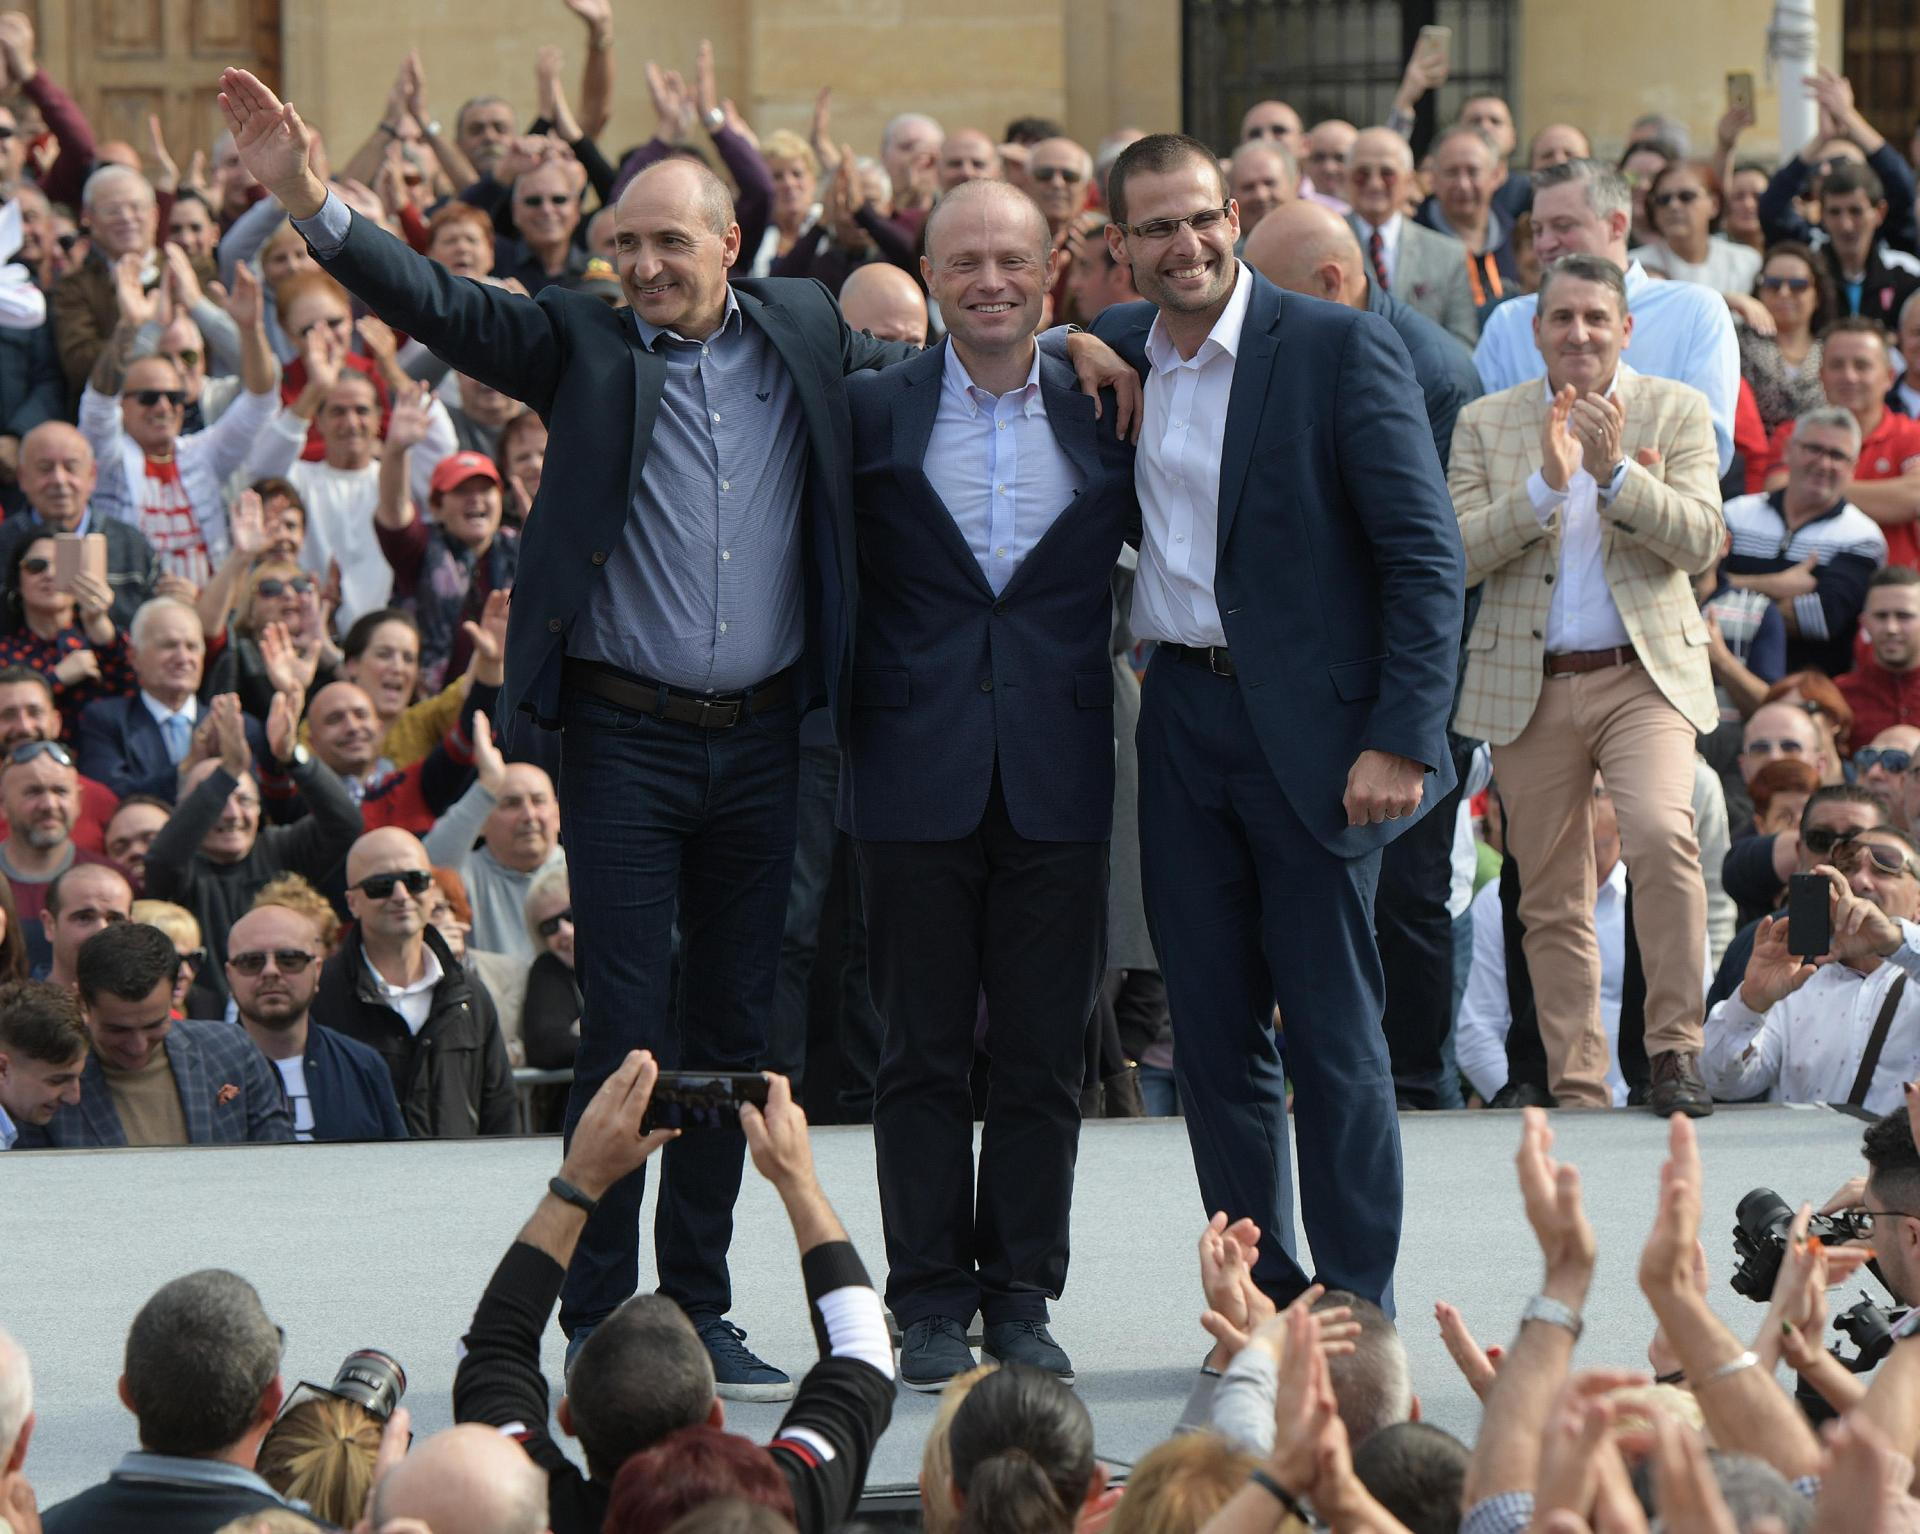 Joseph Muscat flanked by the two men who were gunning to replace him. Photo: Matthew Mirabelli